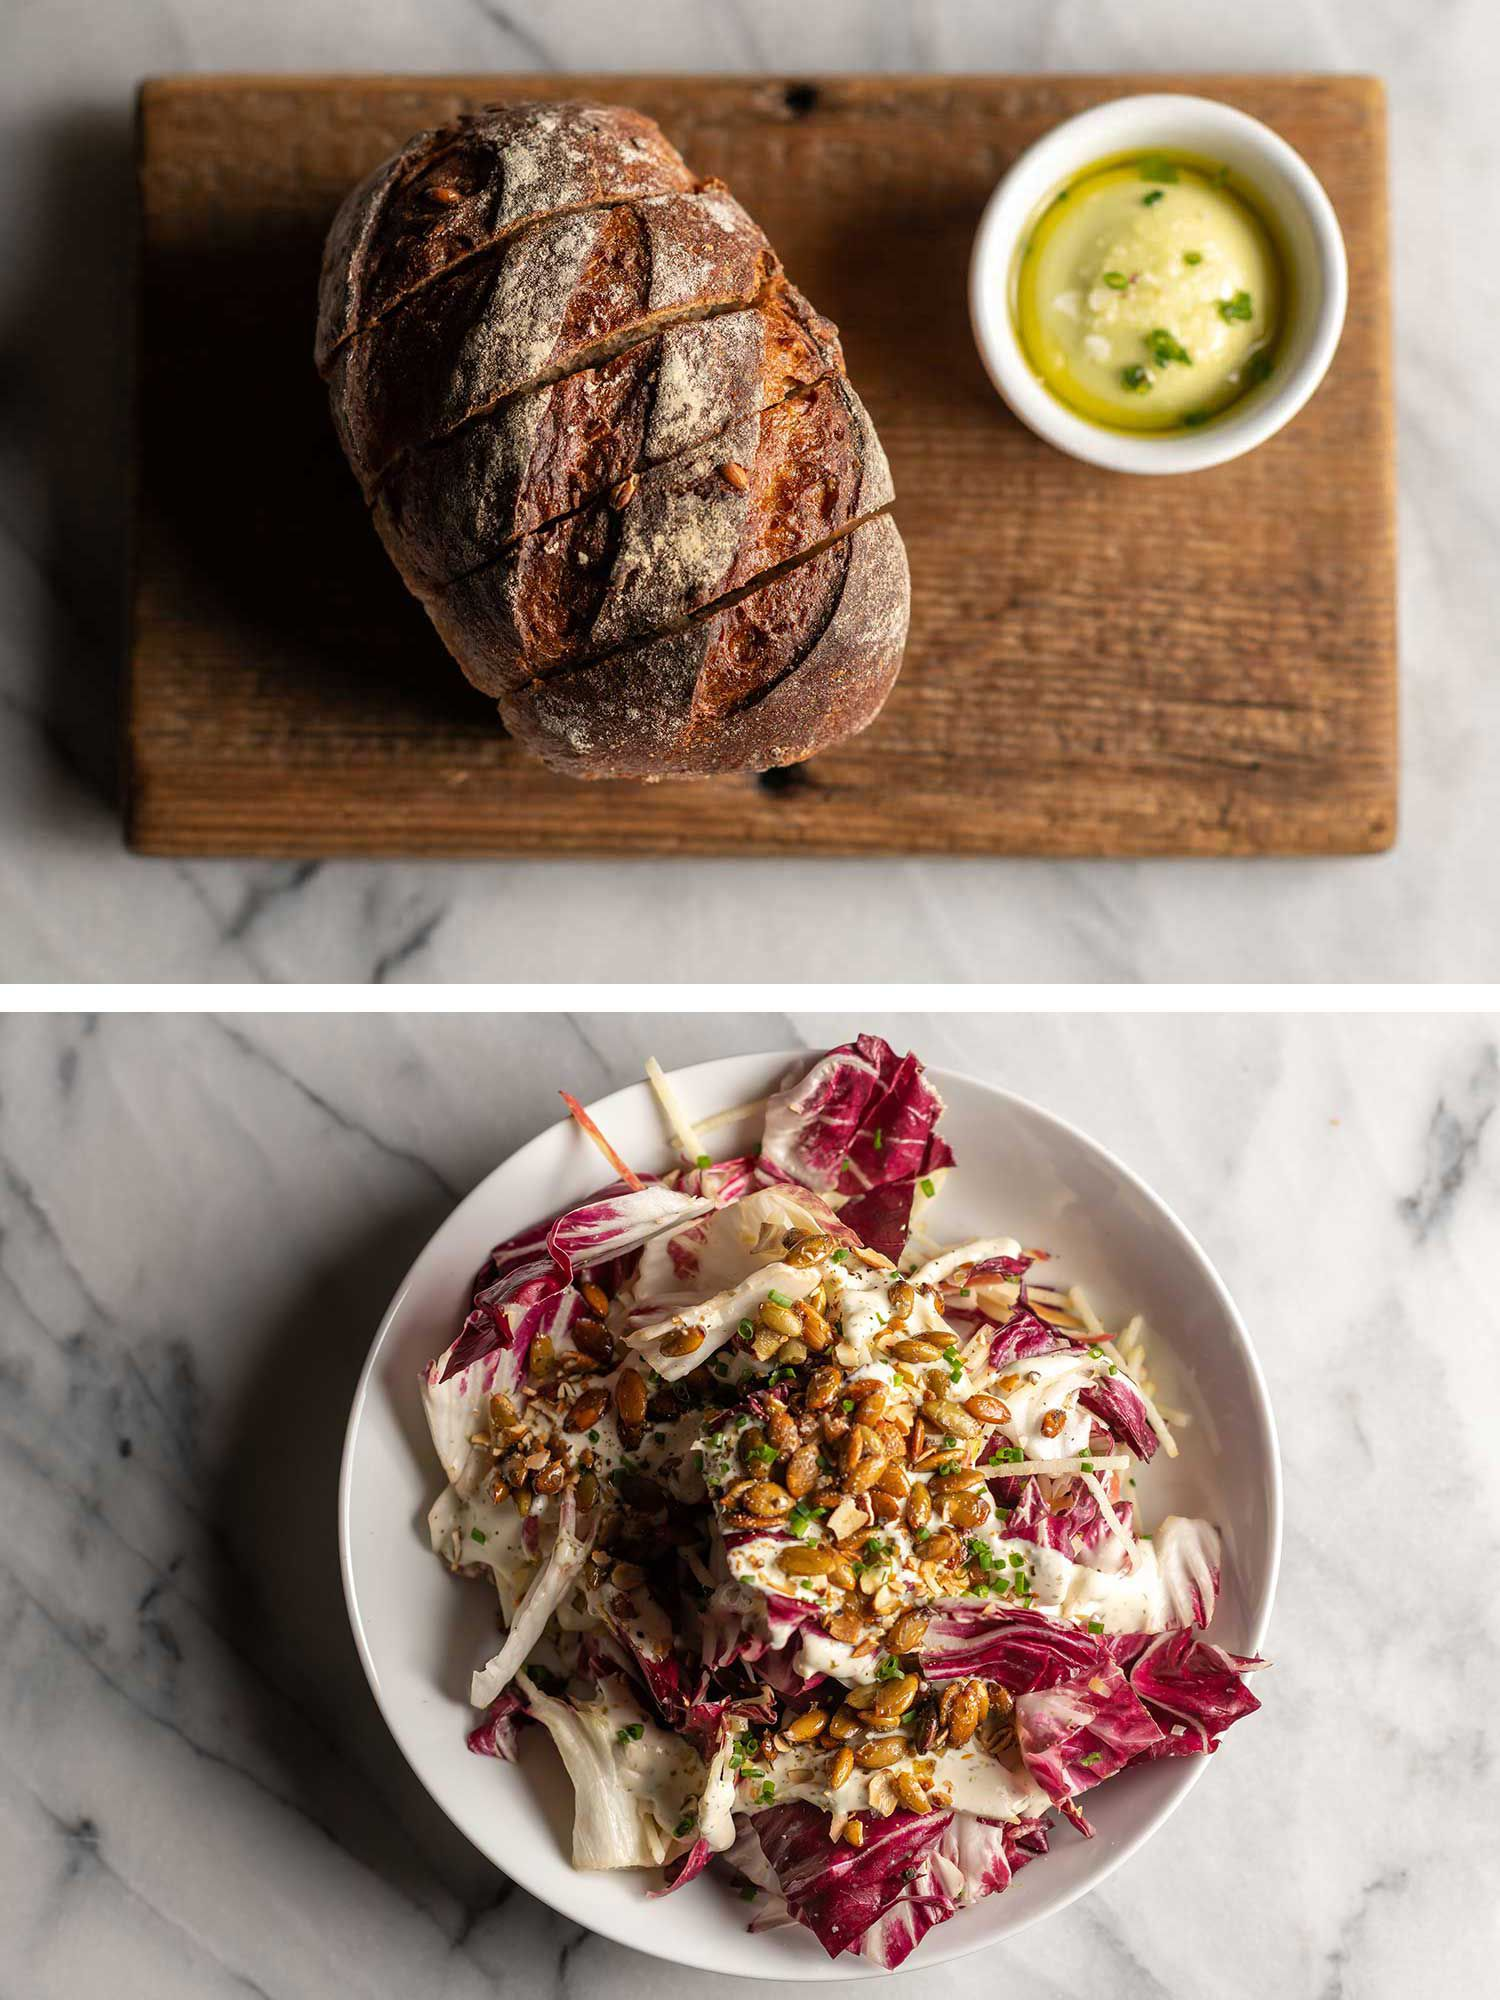 Emmer sourdough and radicchio salad with preserved lemon ranch dressing were full of fermented goodness.